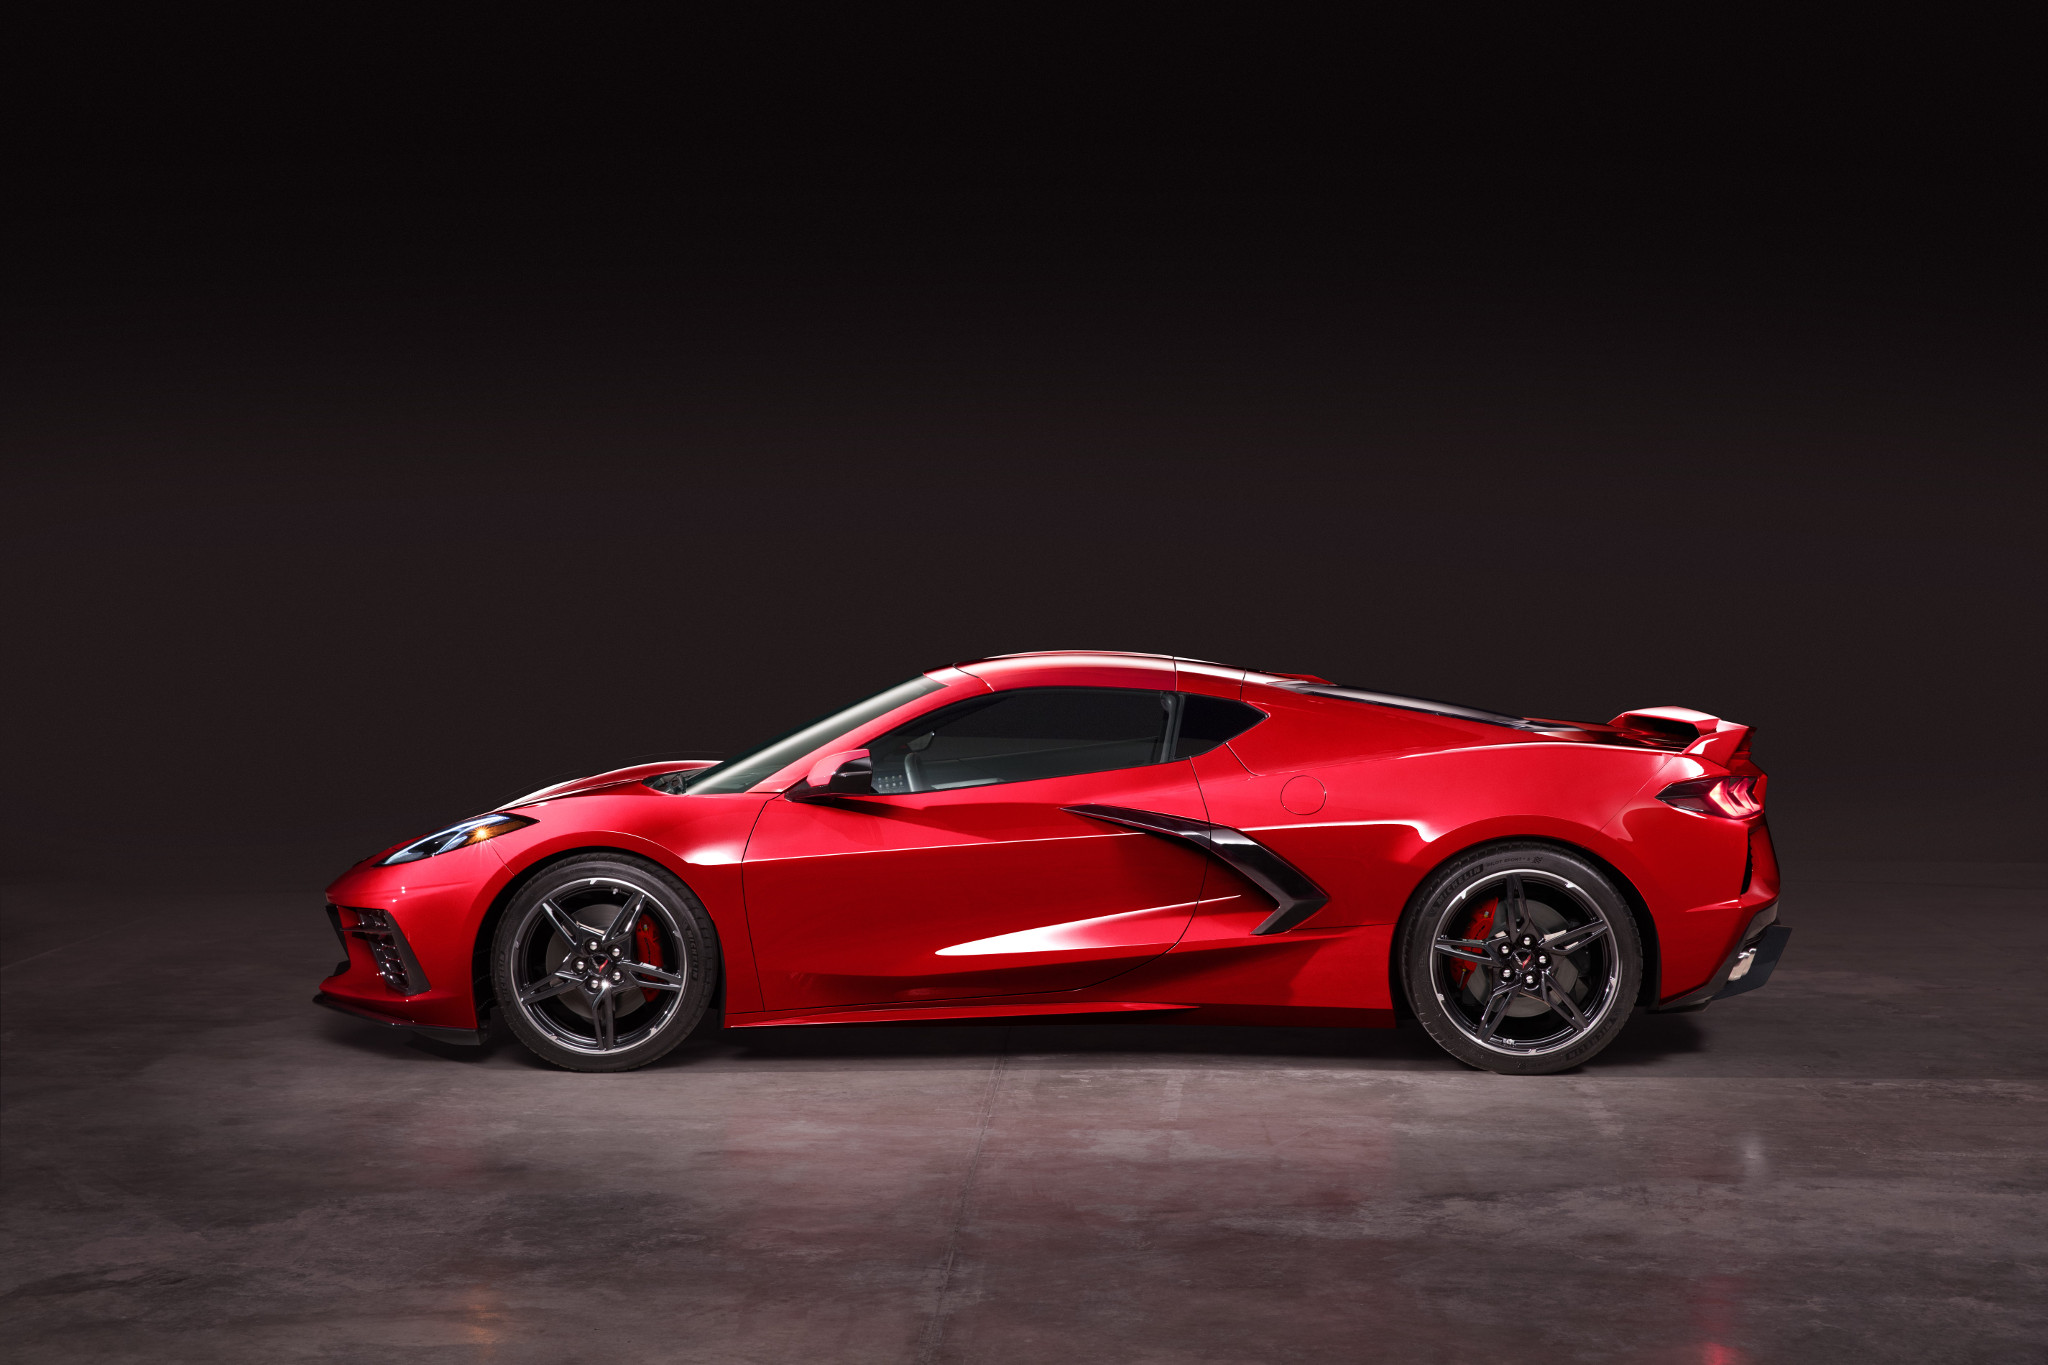 2020 Chevrolet Corvette: Stingray's Price Doesn't Sting